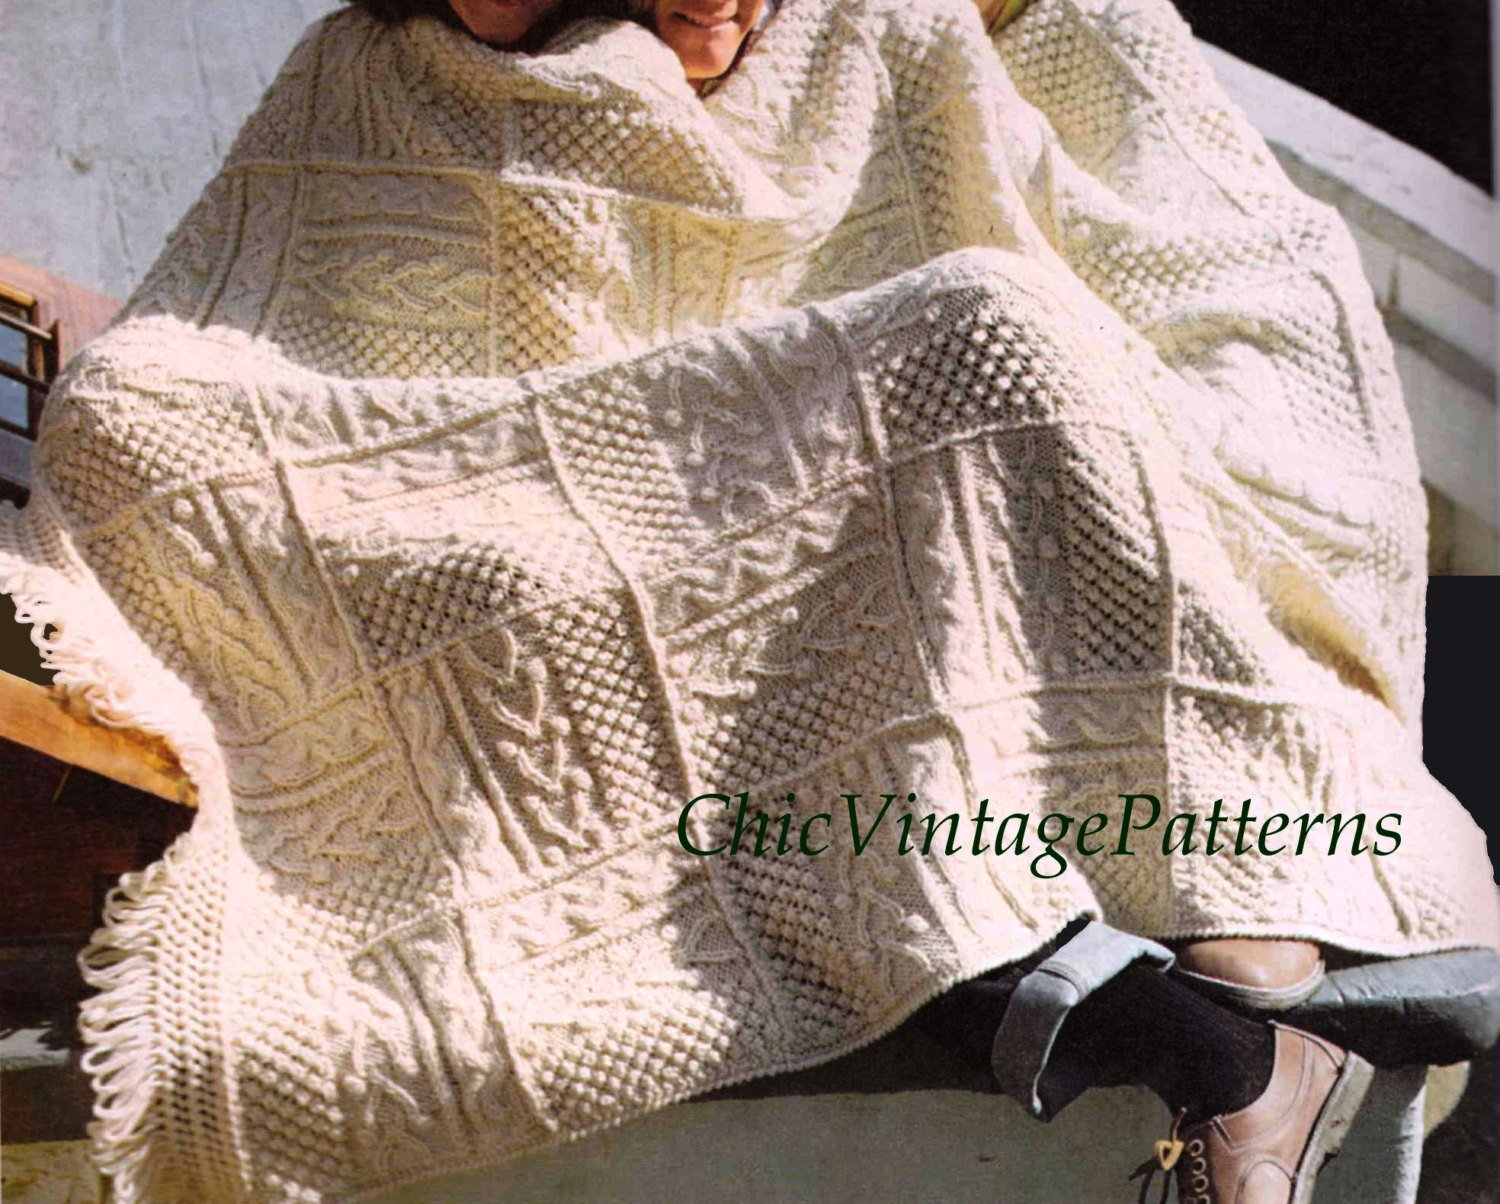 Knitted Afghan Rug Pattern, Irish Fisherman's Afghan, PDF Knitting Pattern